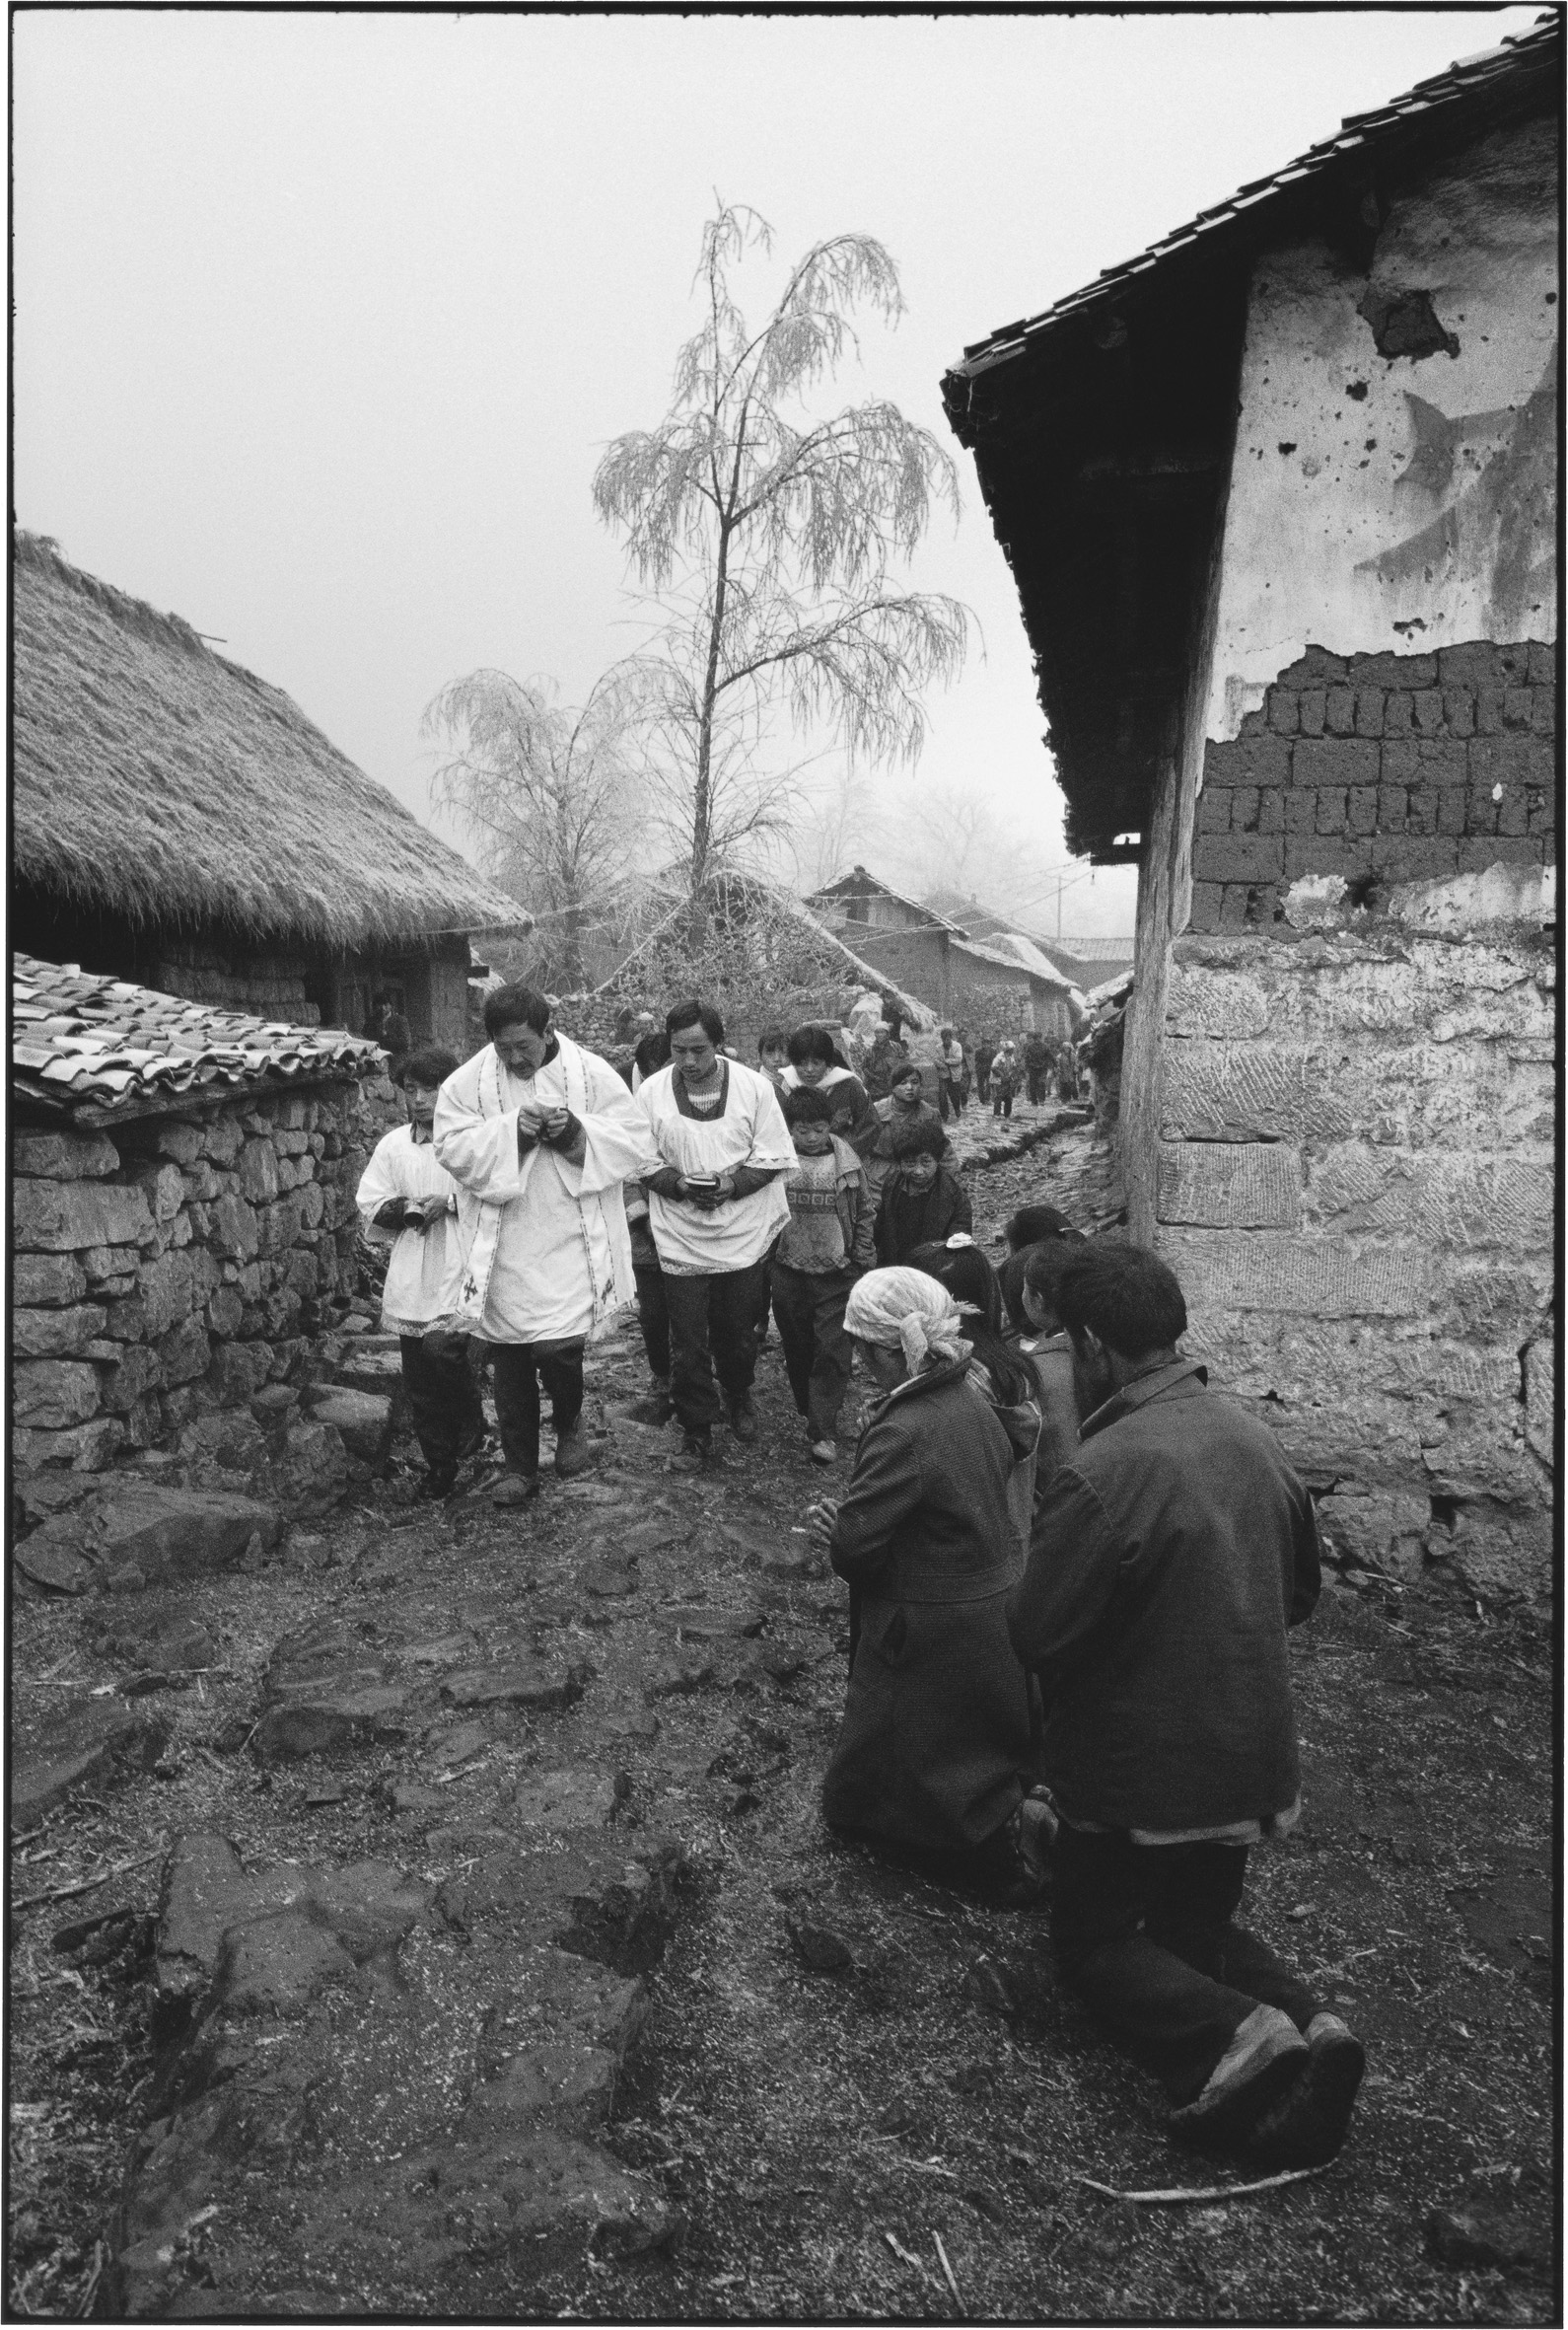 A Priest Carrying the Host with His Congregation, Yunnan, China